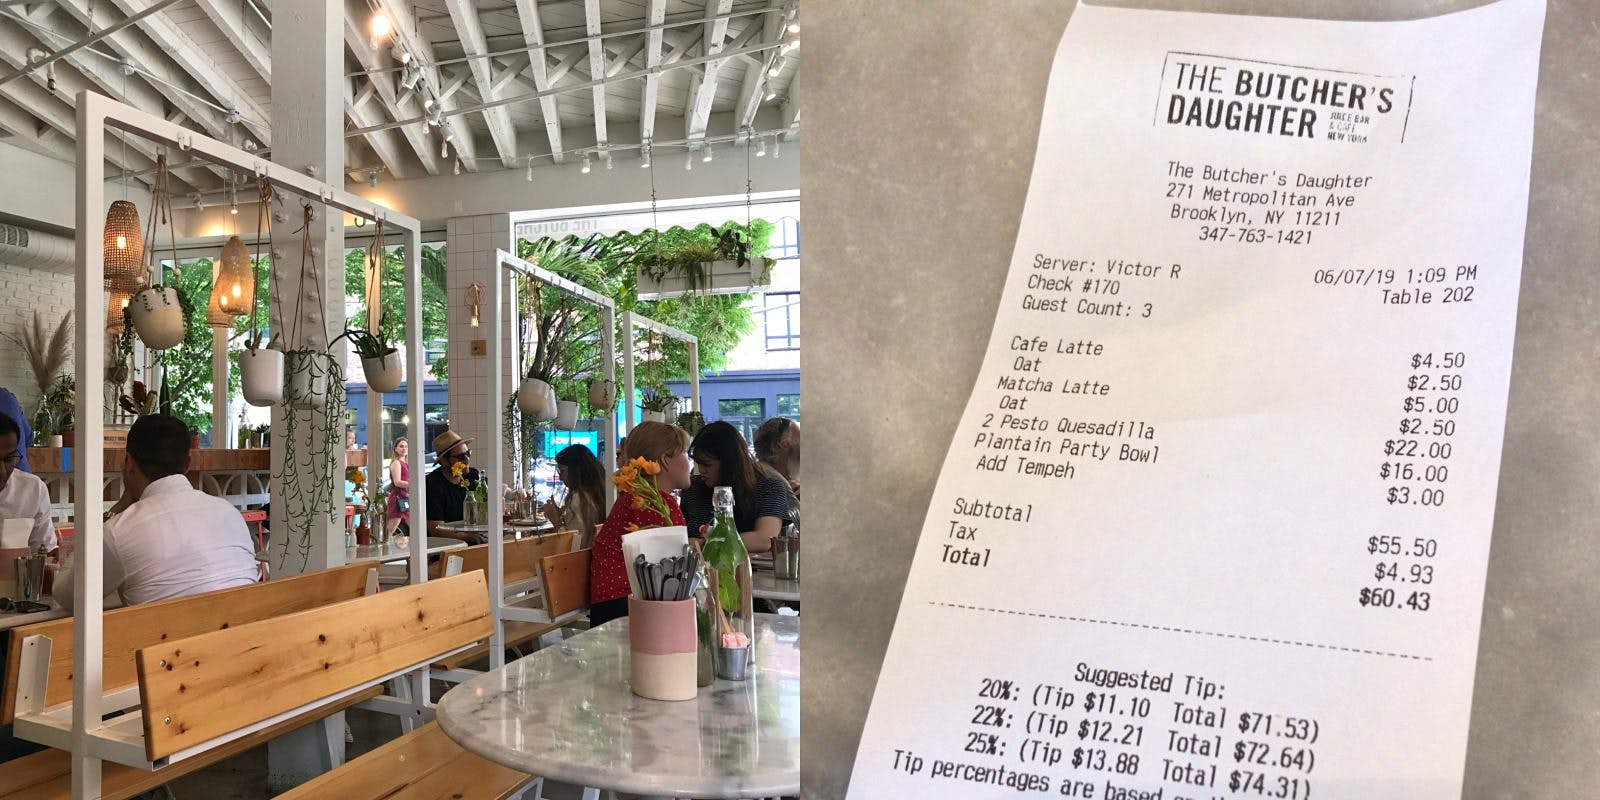 Interior shot of The Butcher's Daughter restaurant and an image of the bill for all three diners.